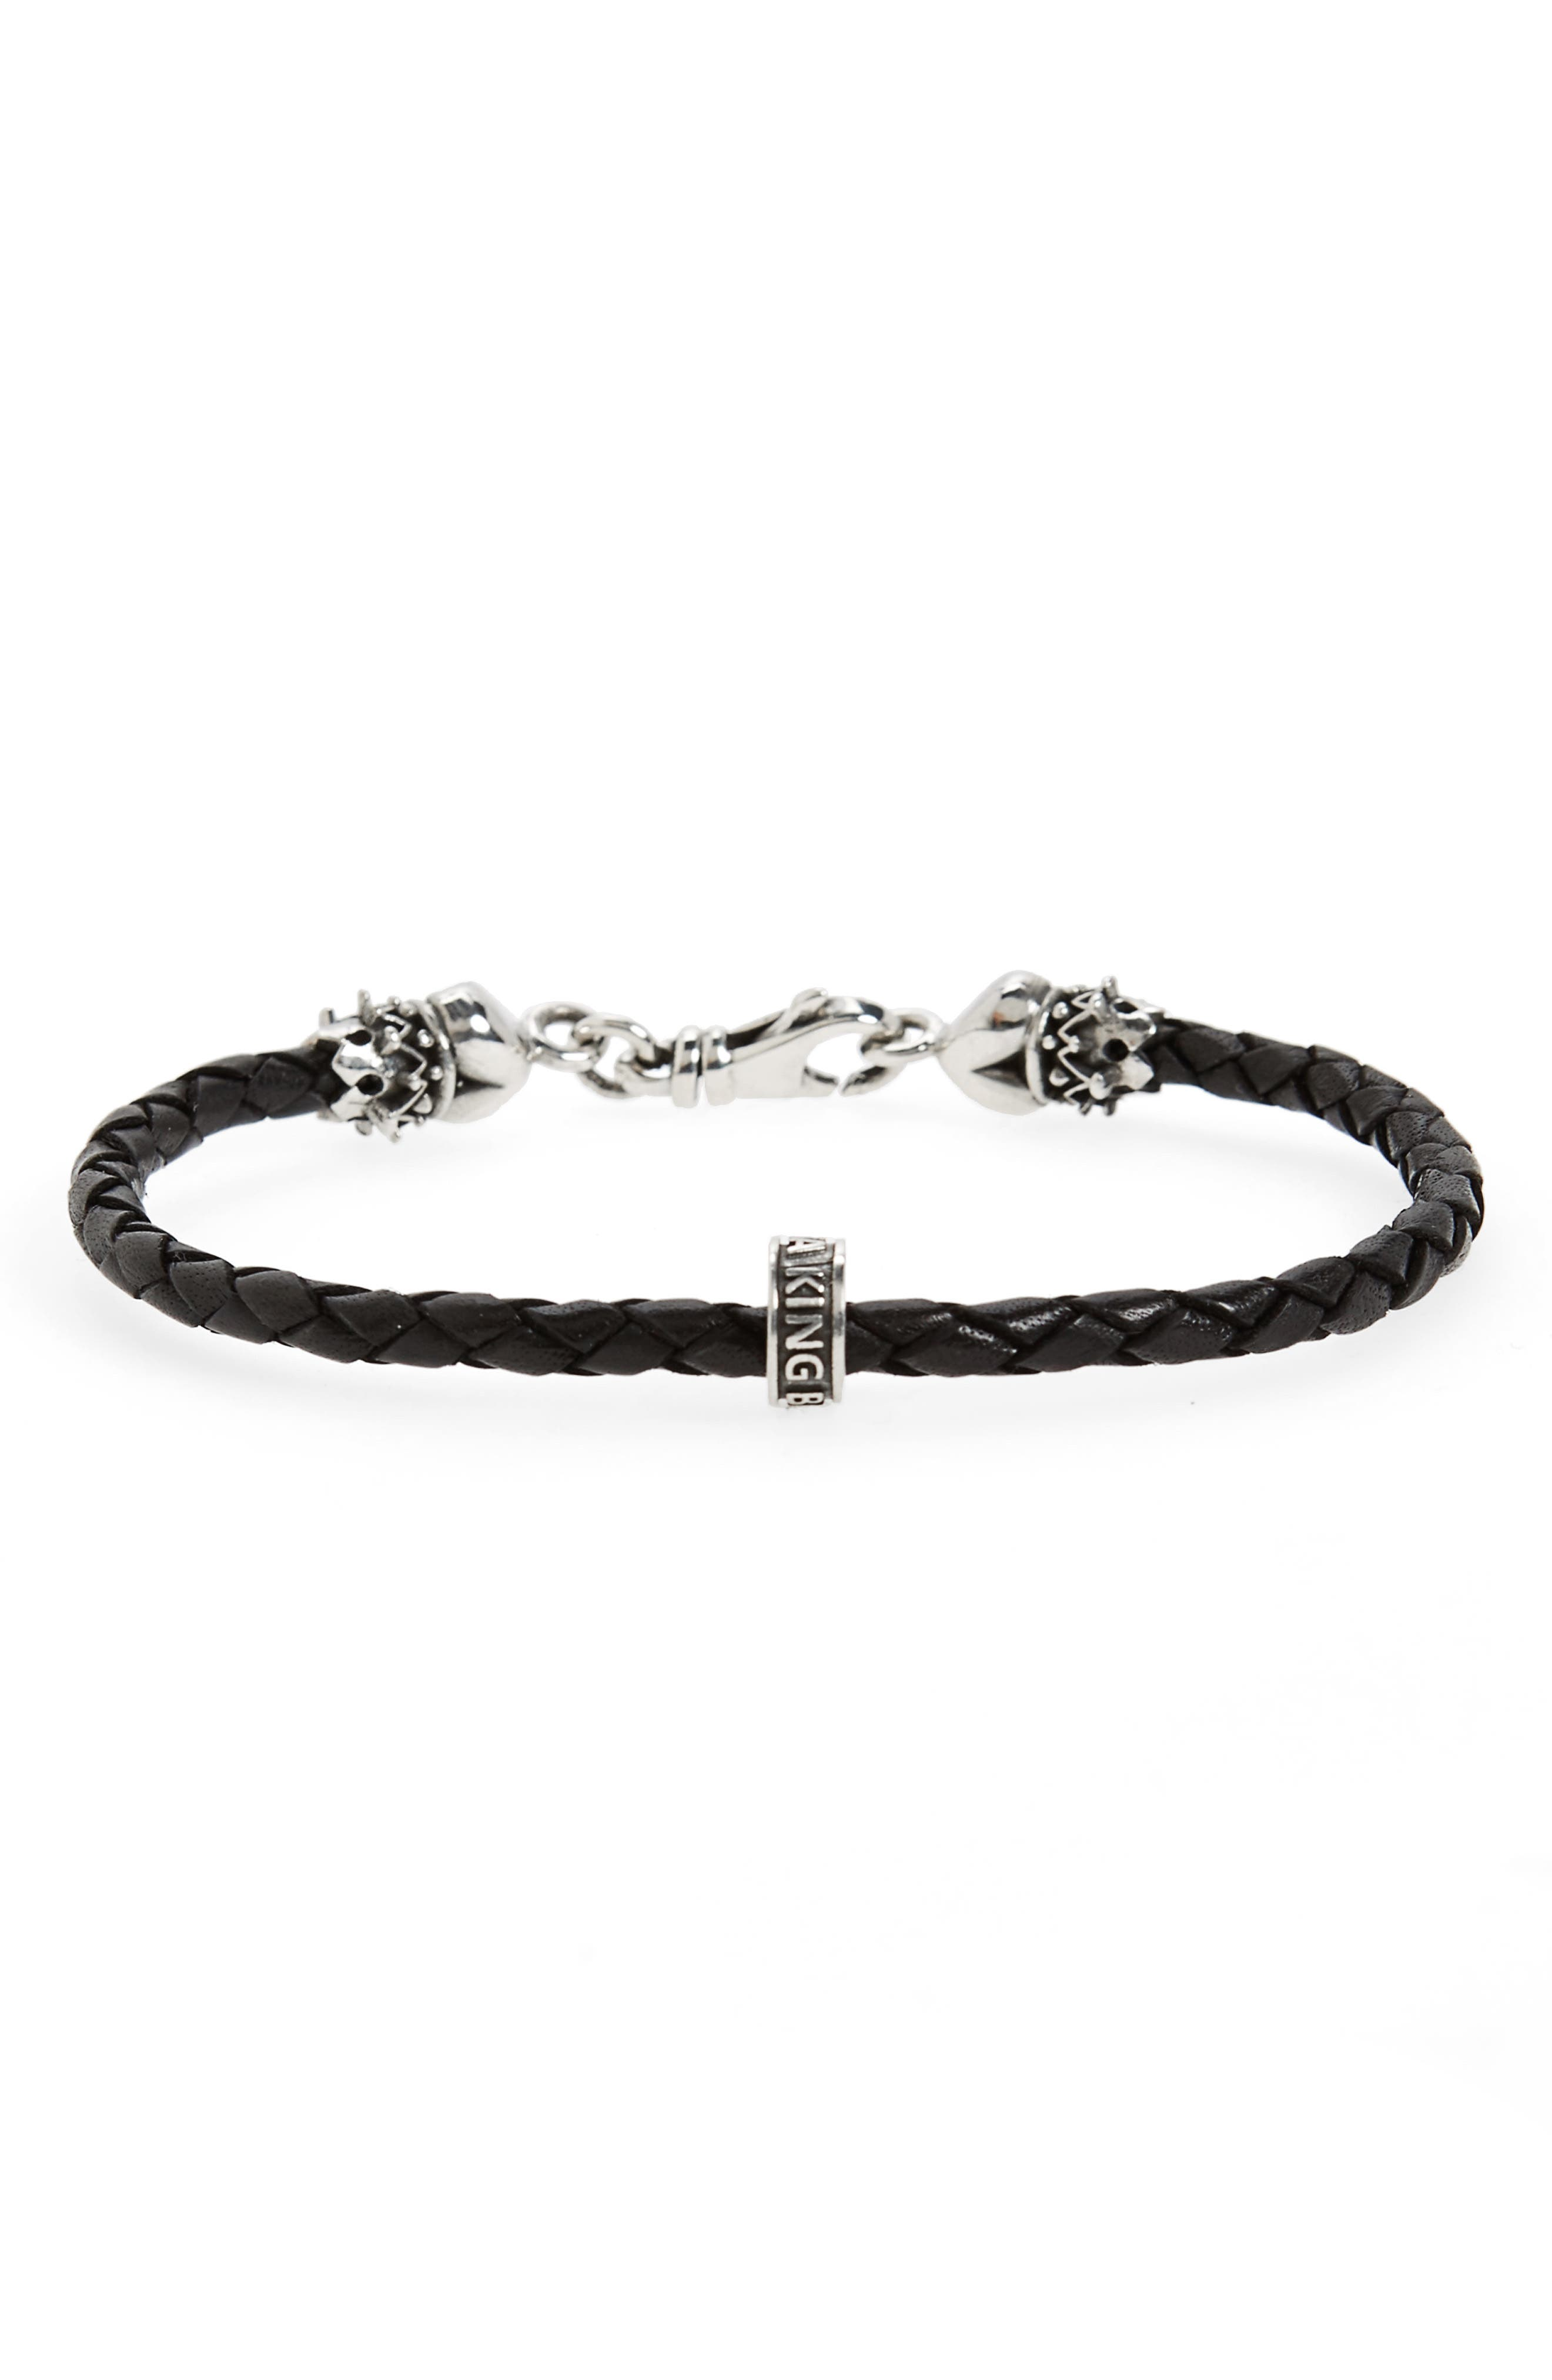 Braided Leather Bracelet,                         Main,                         color, Silver/ Black